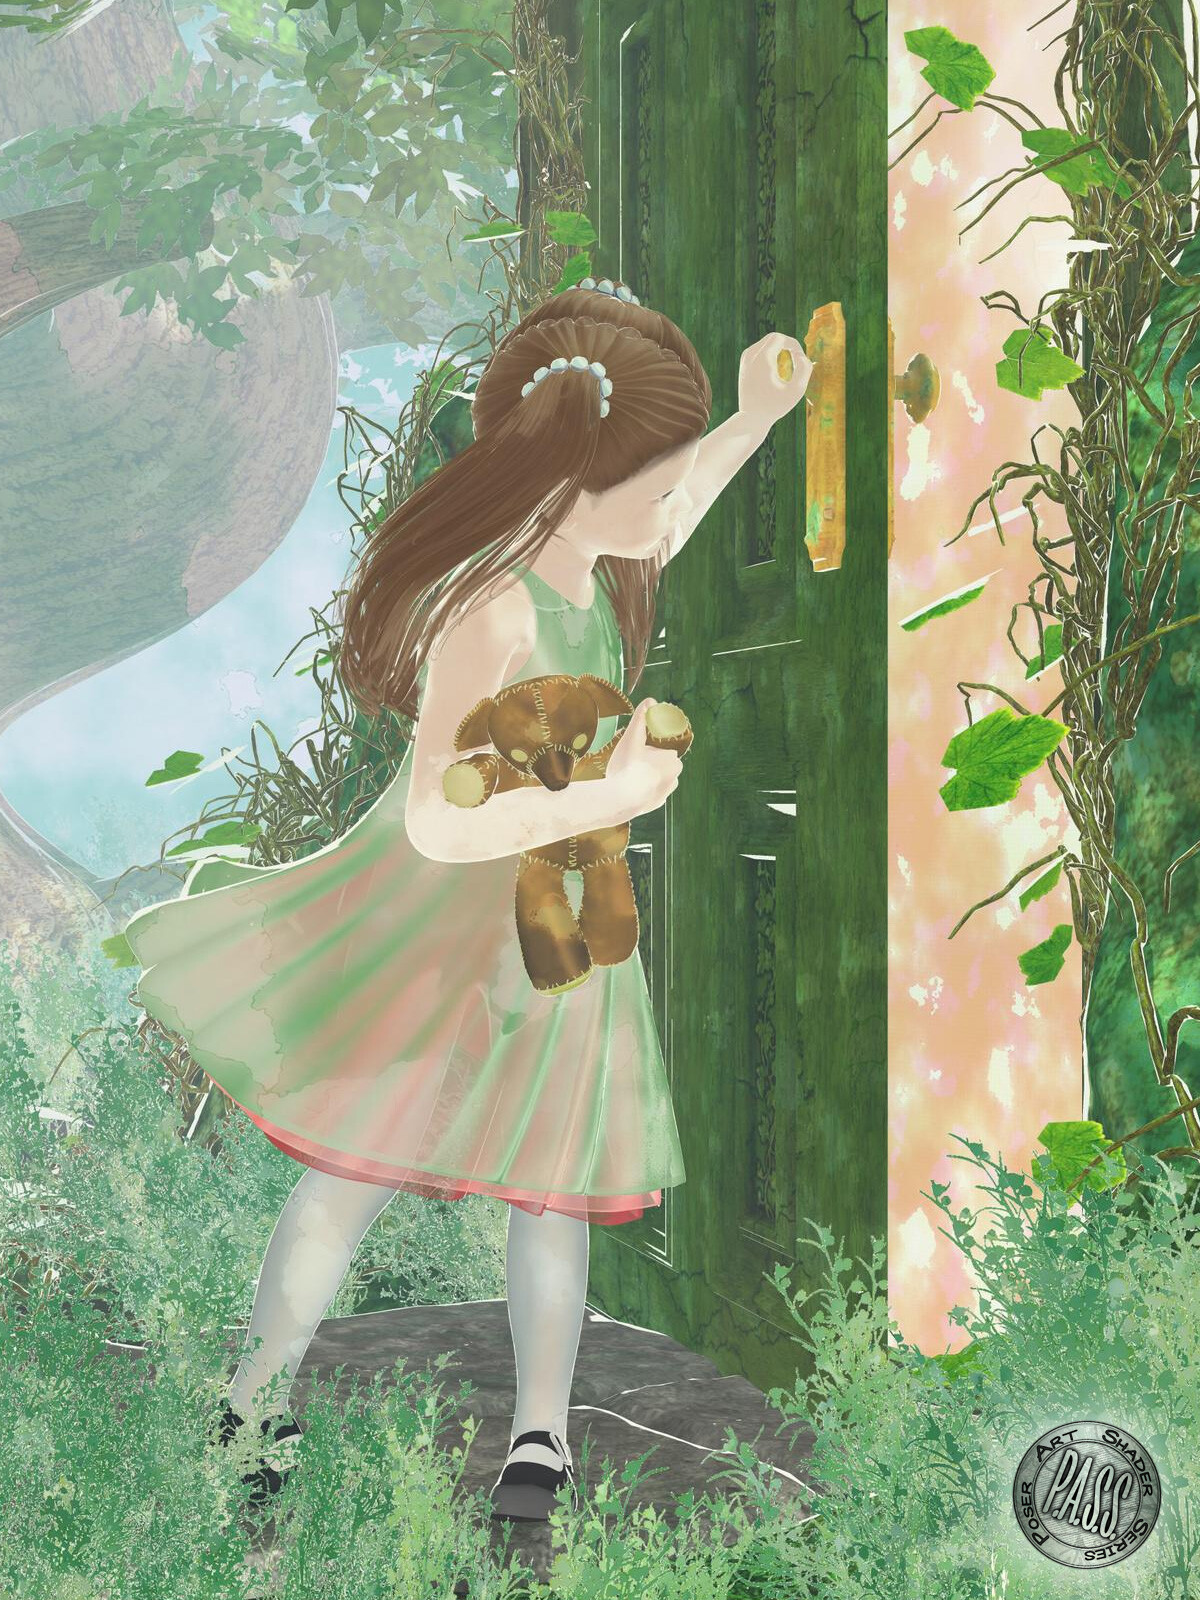 An example of fabric, foliage, skin, and hair shaders, and the depth cue backgrounds.